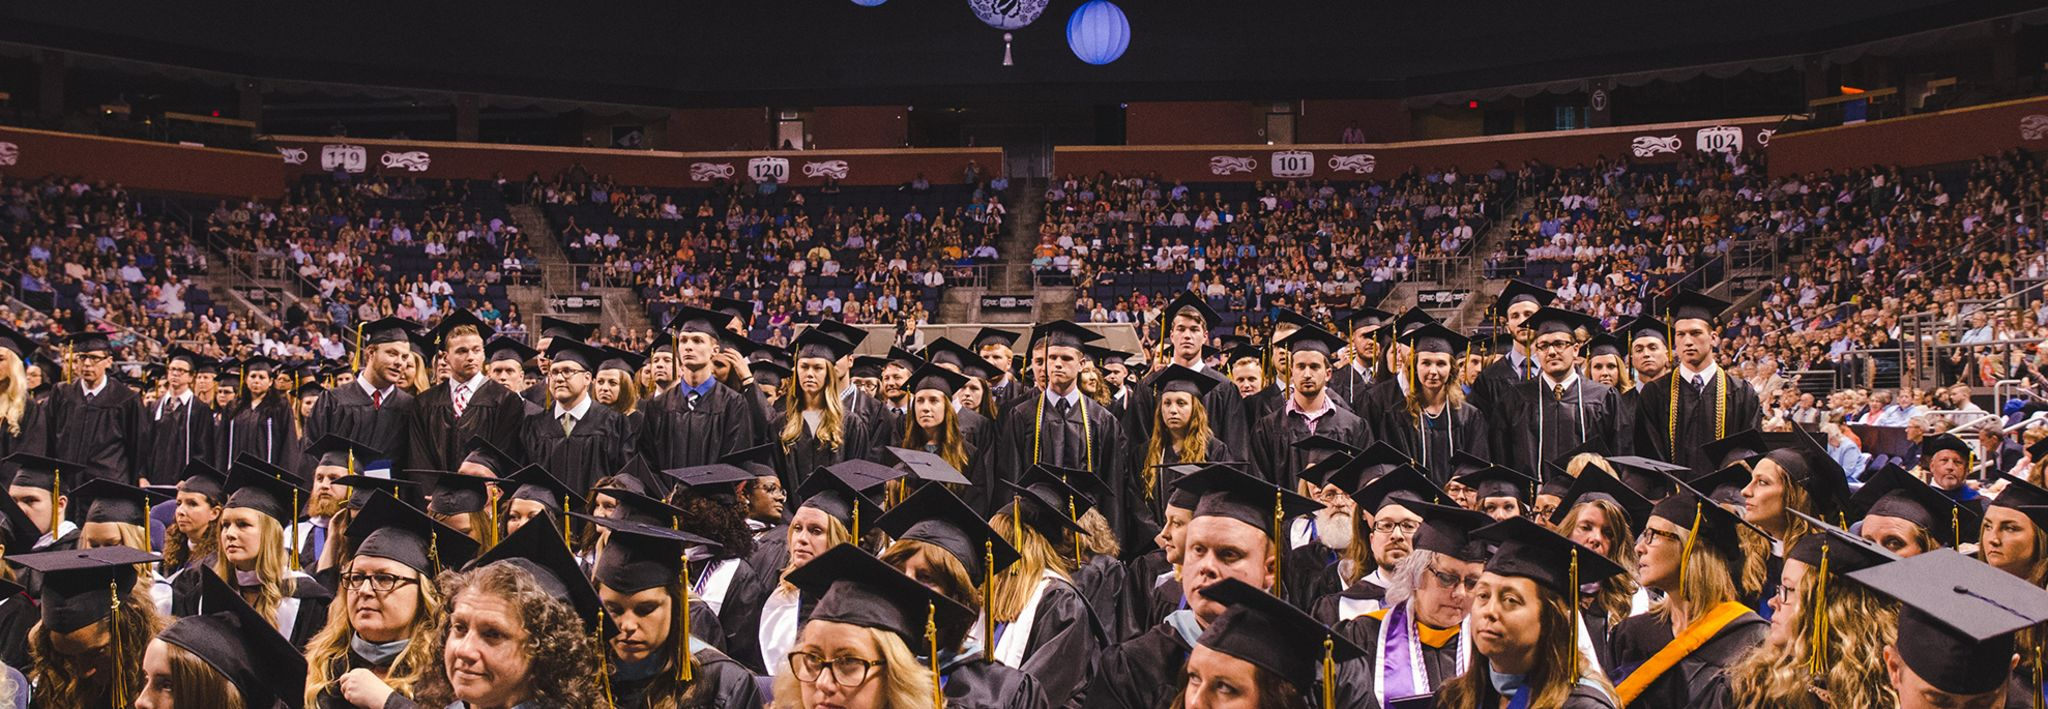 Colorado Christian University commencement ceremony.